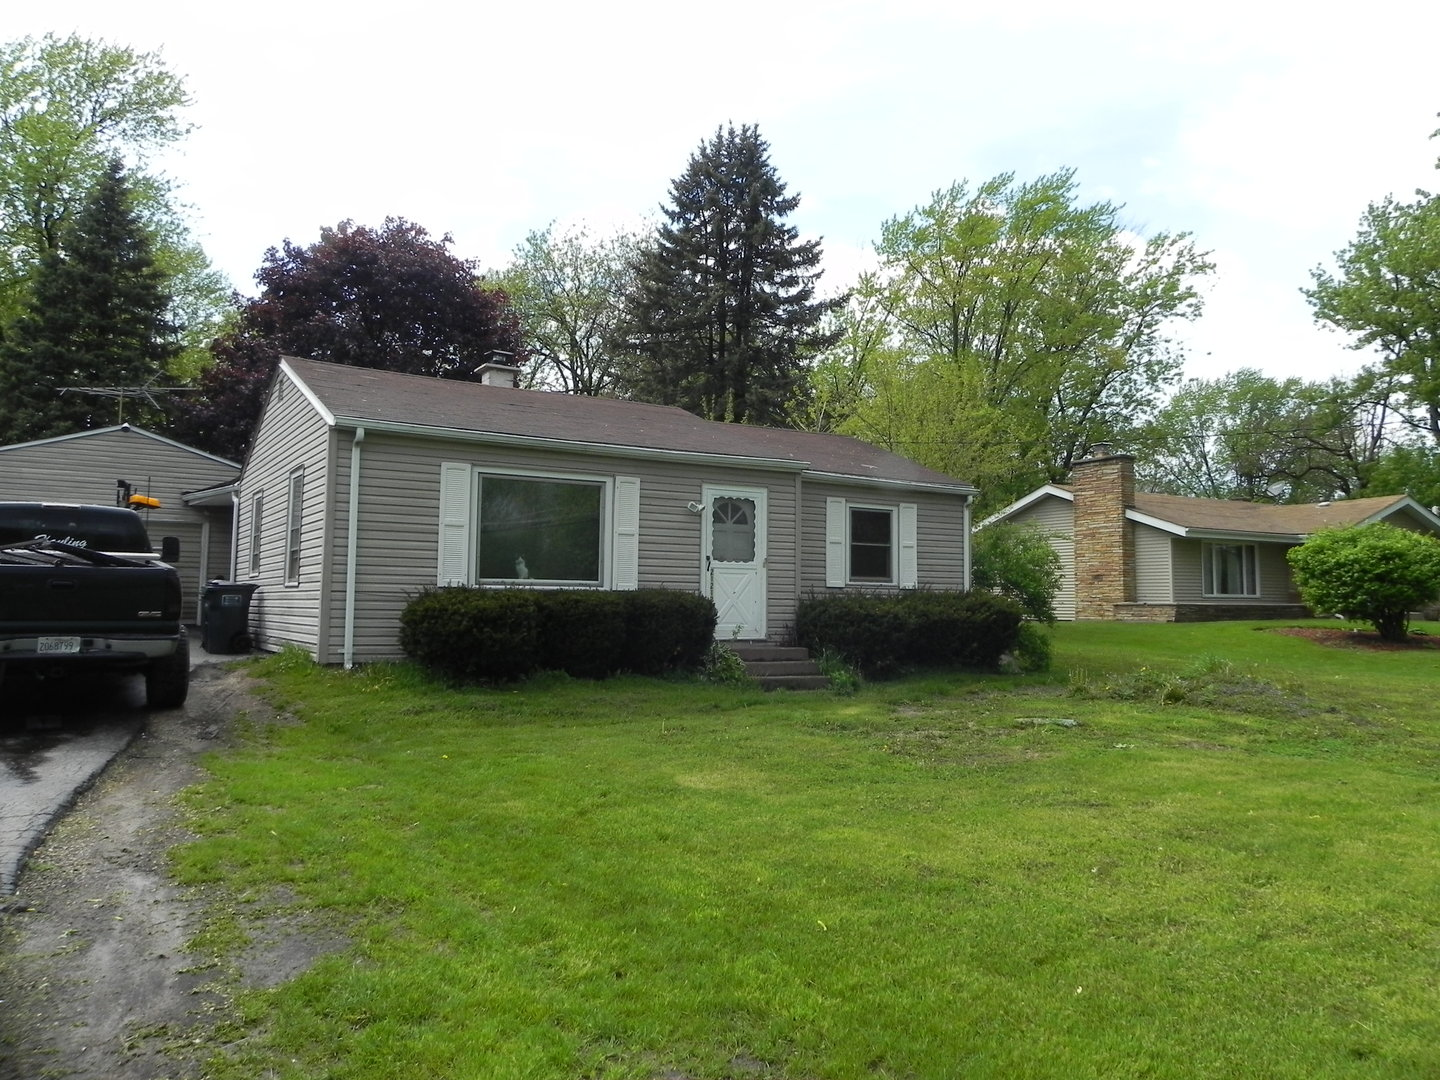 21212 South 93rd, FRANKFORT, Illinois, 60423